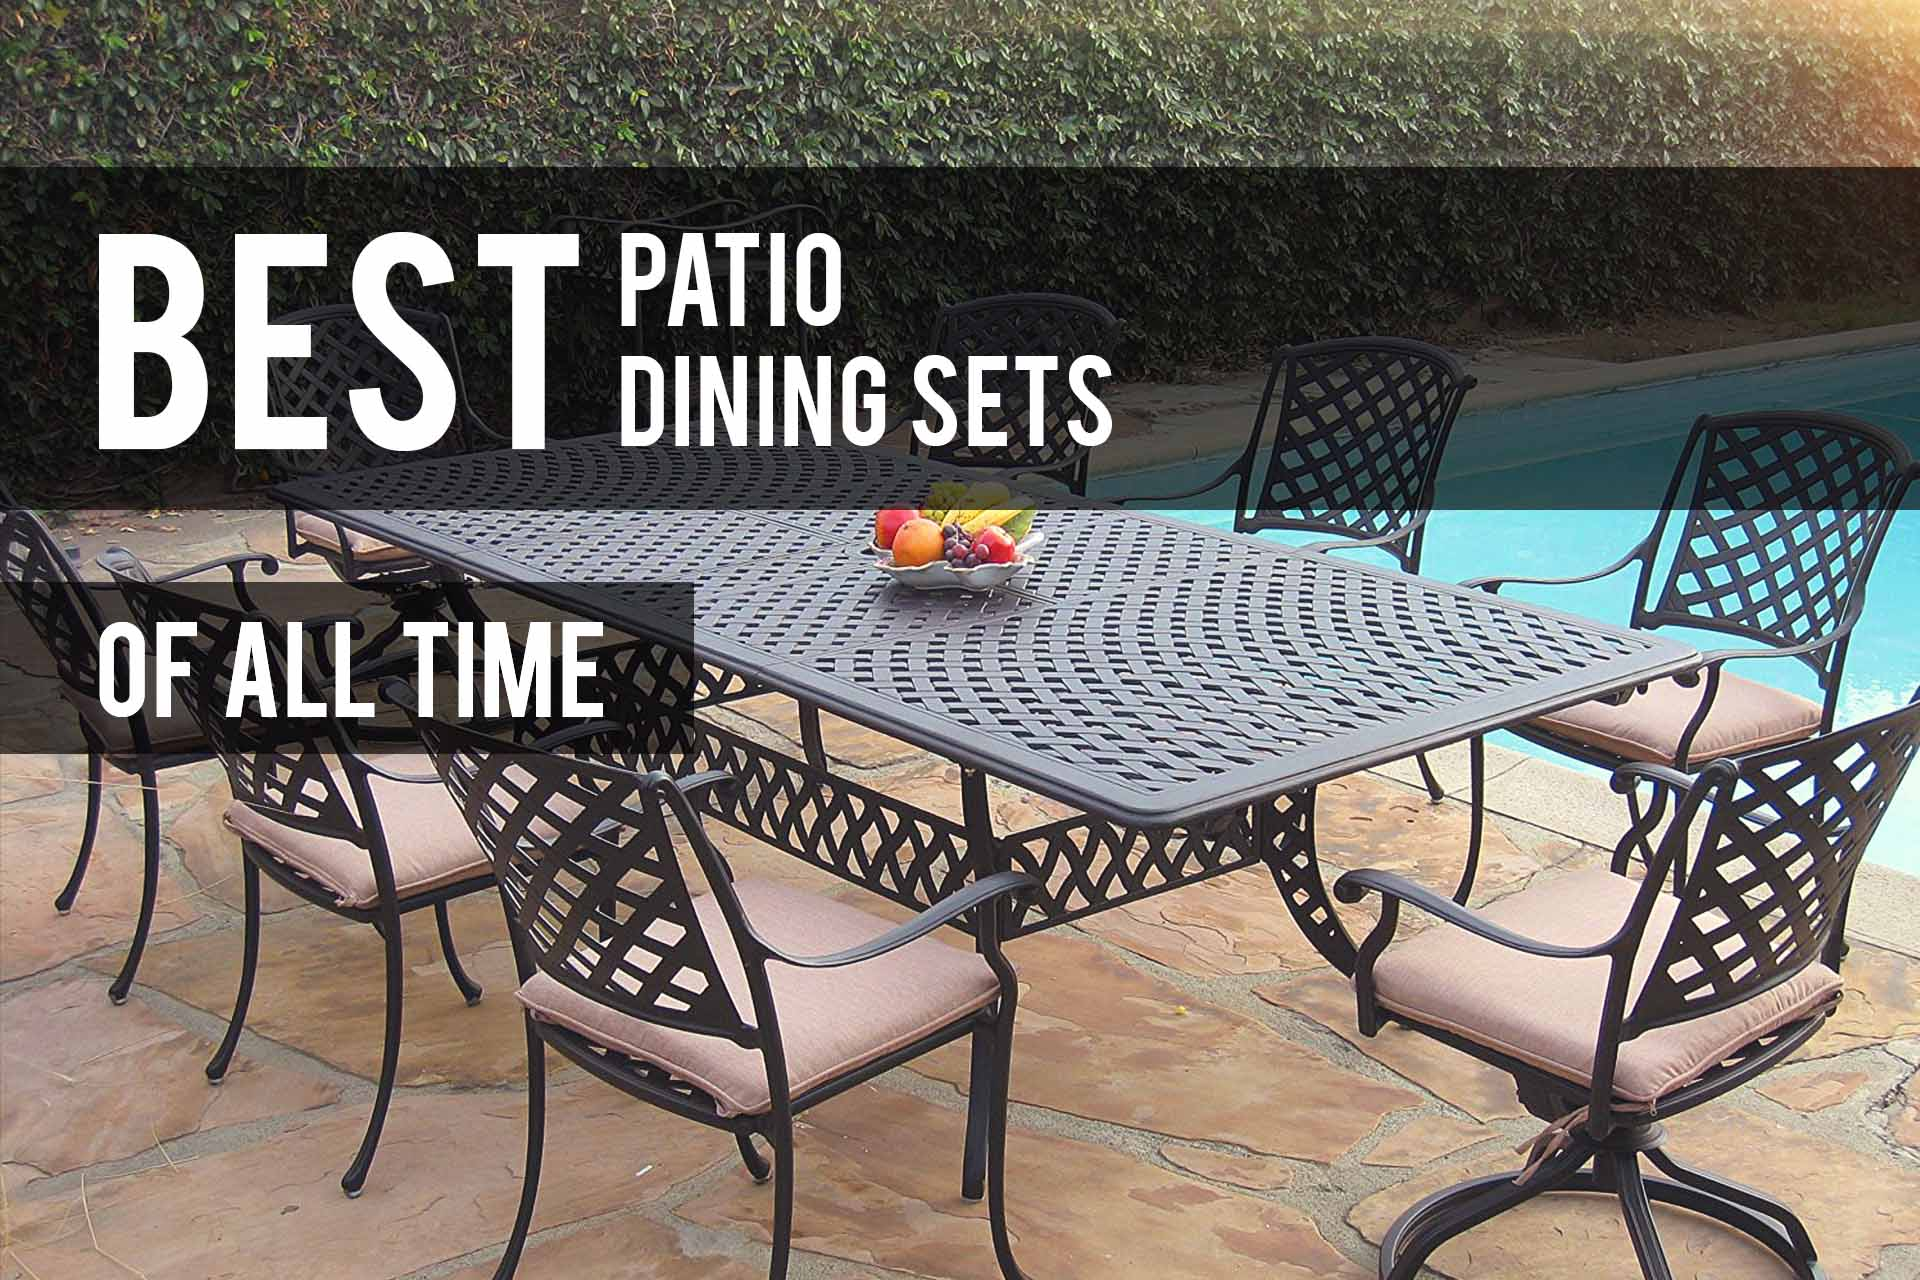 Best Patio Dining Sets 2020 Reviews